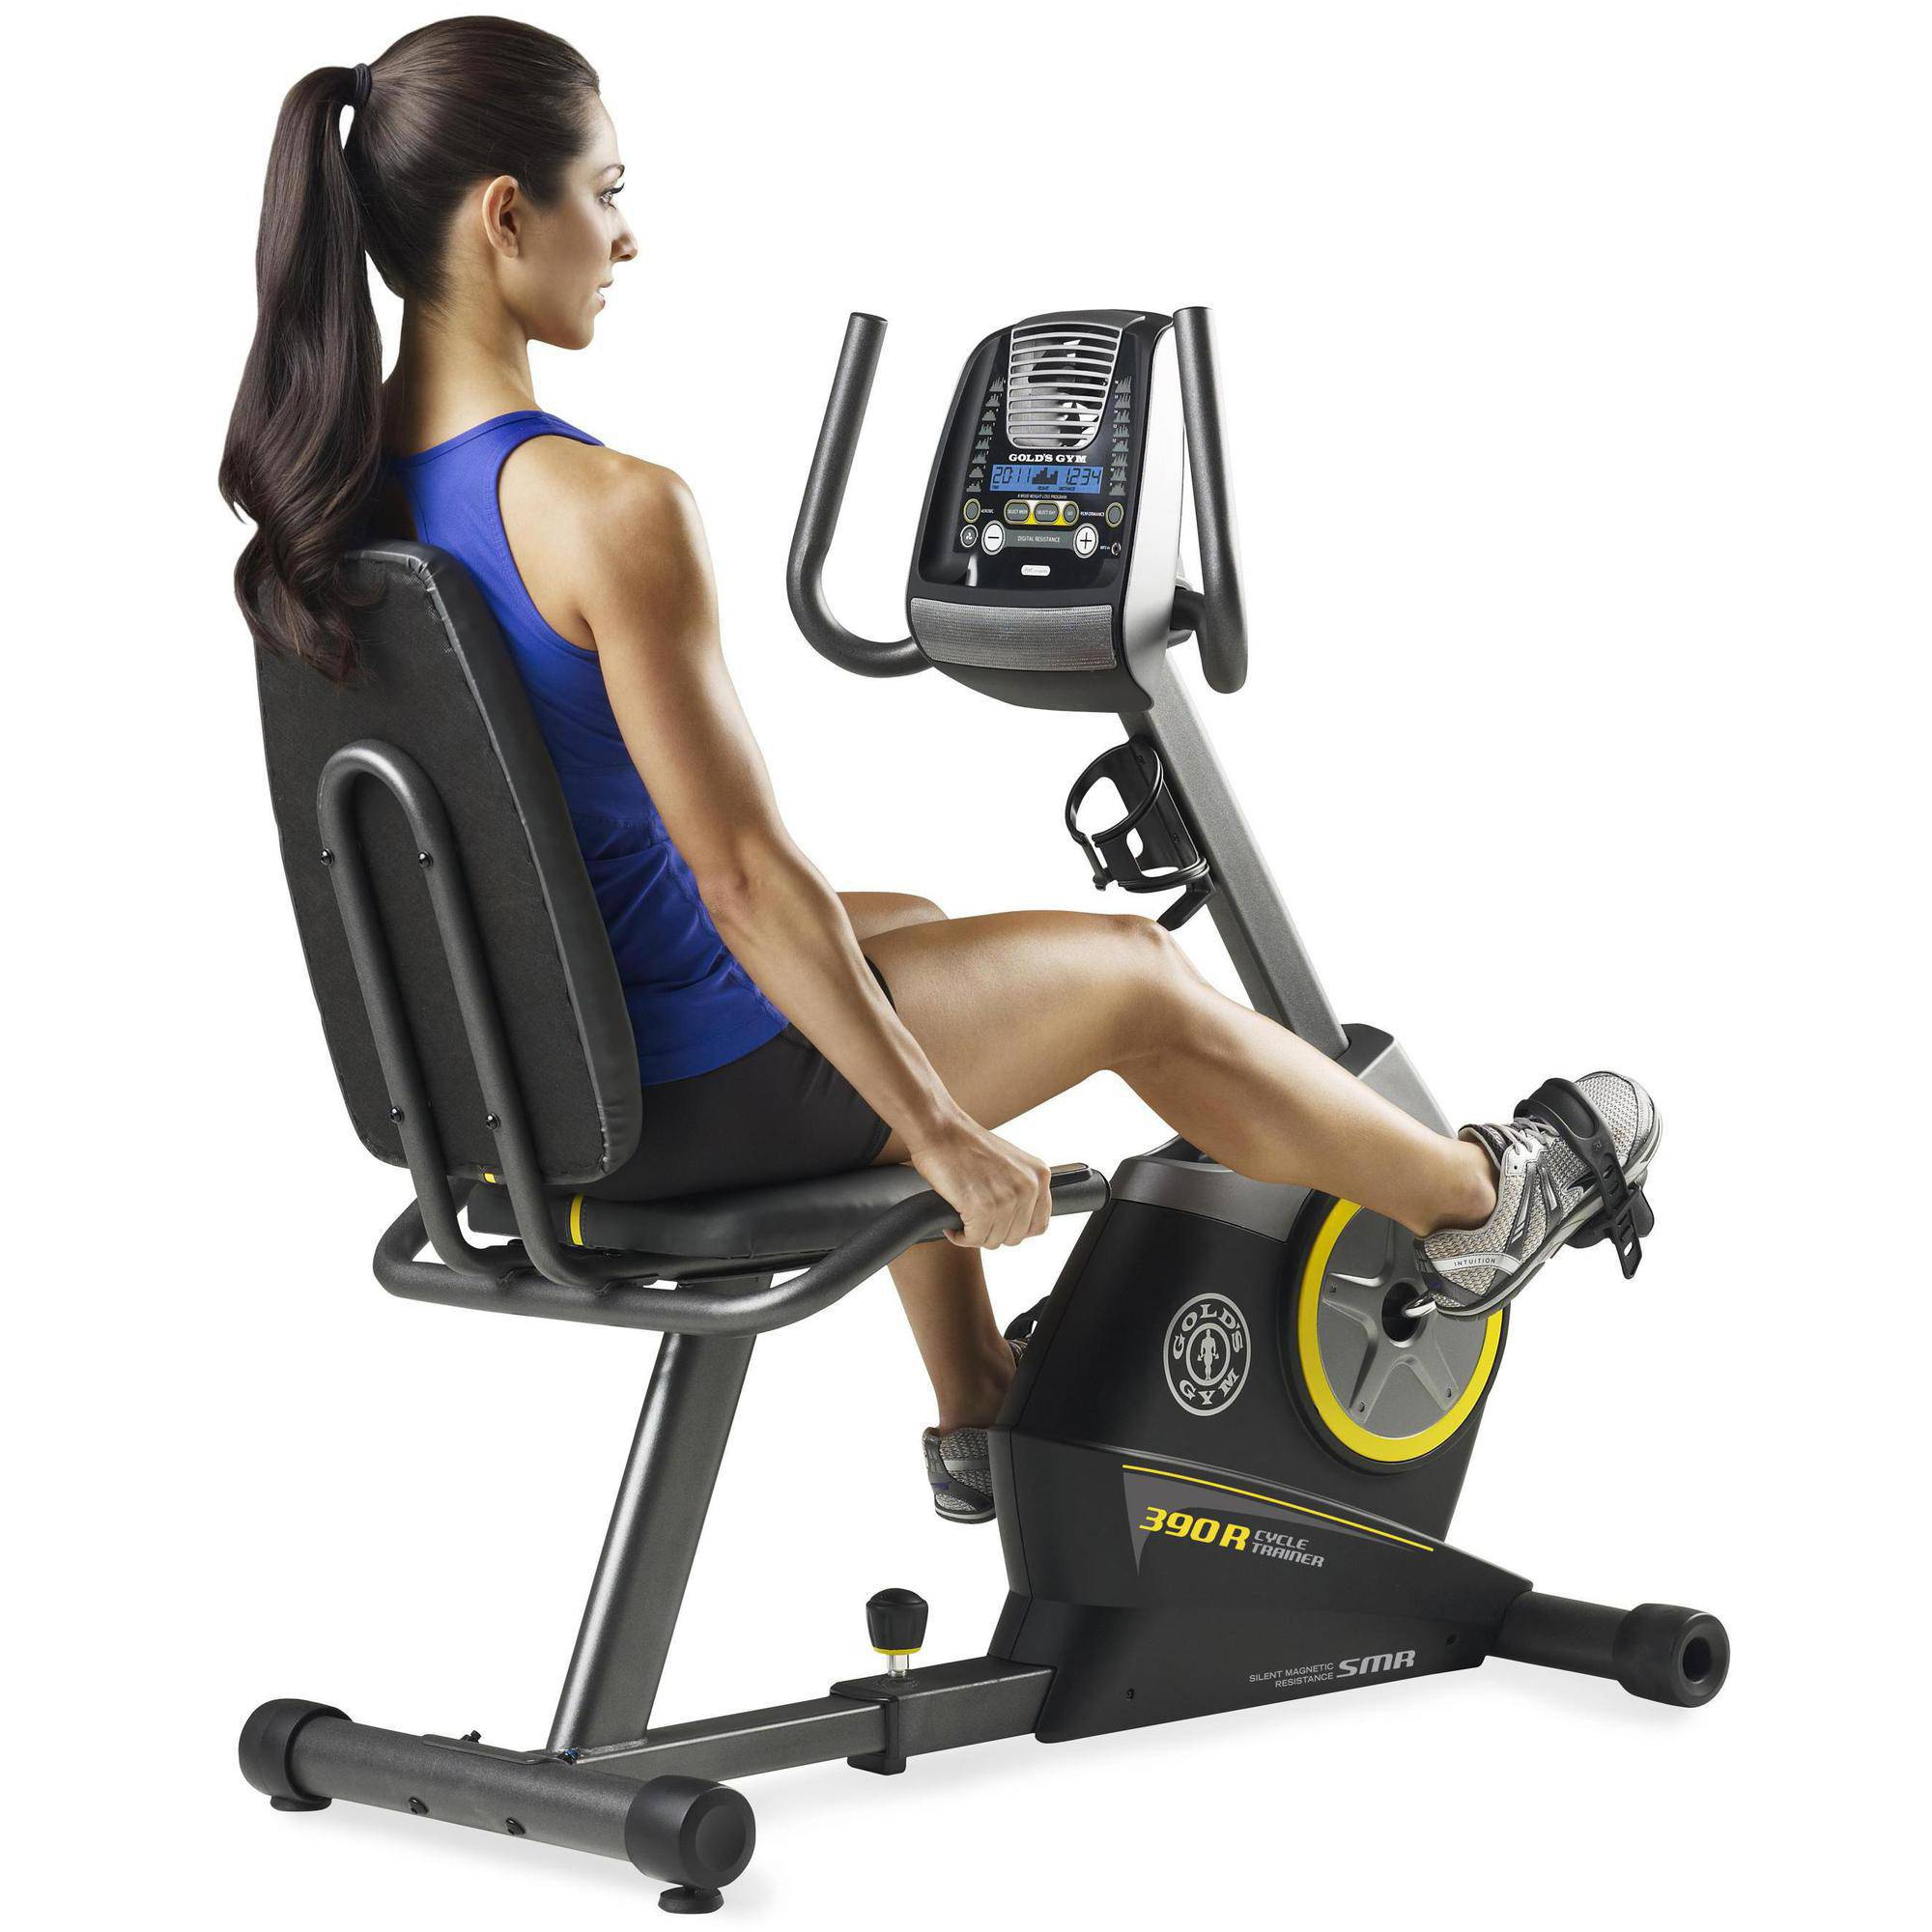 Gold's Gym Cycle Trainer 390 R Recumbent Exercise Bike